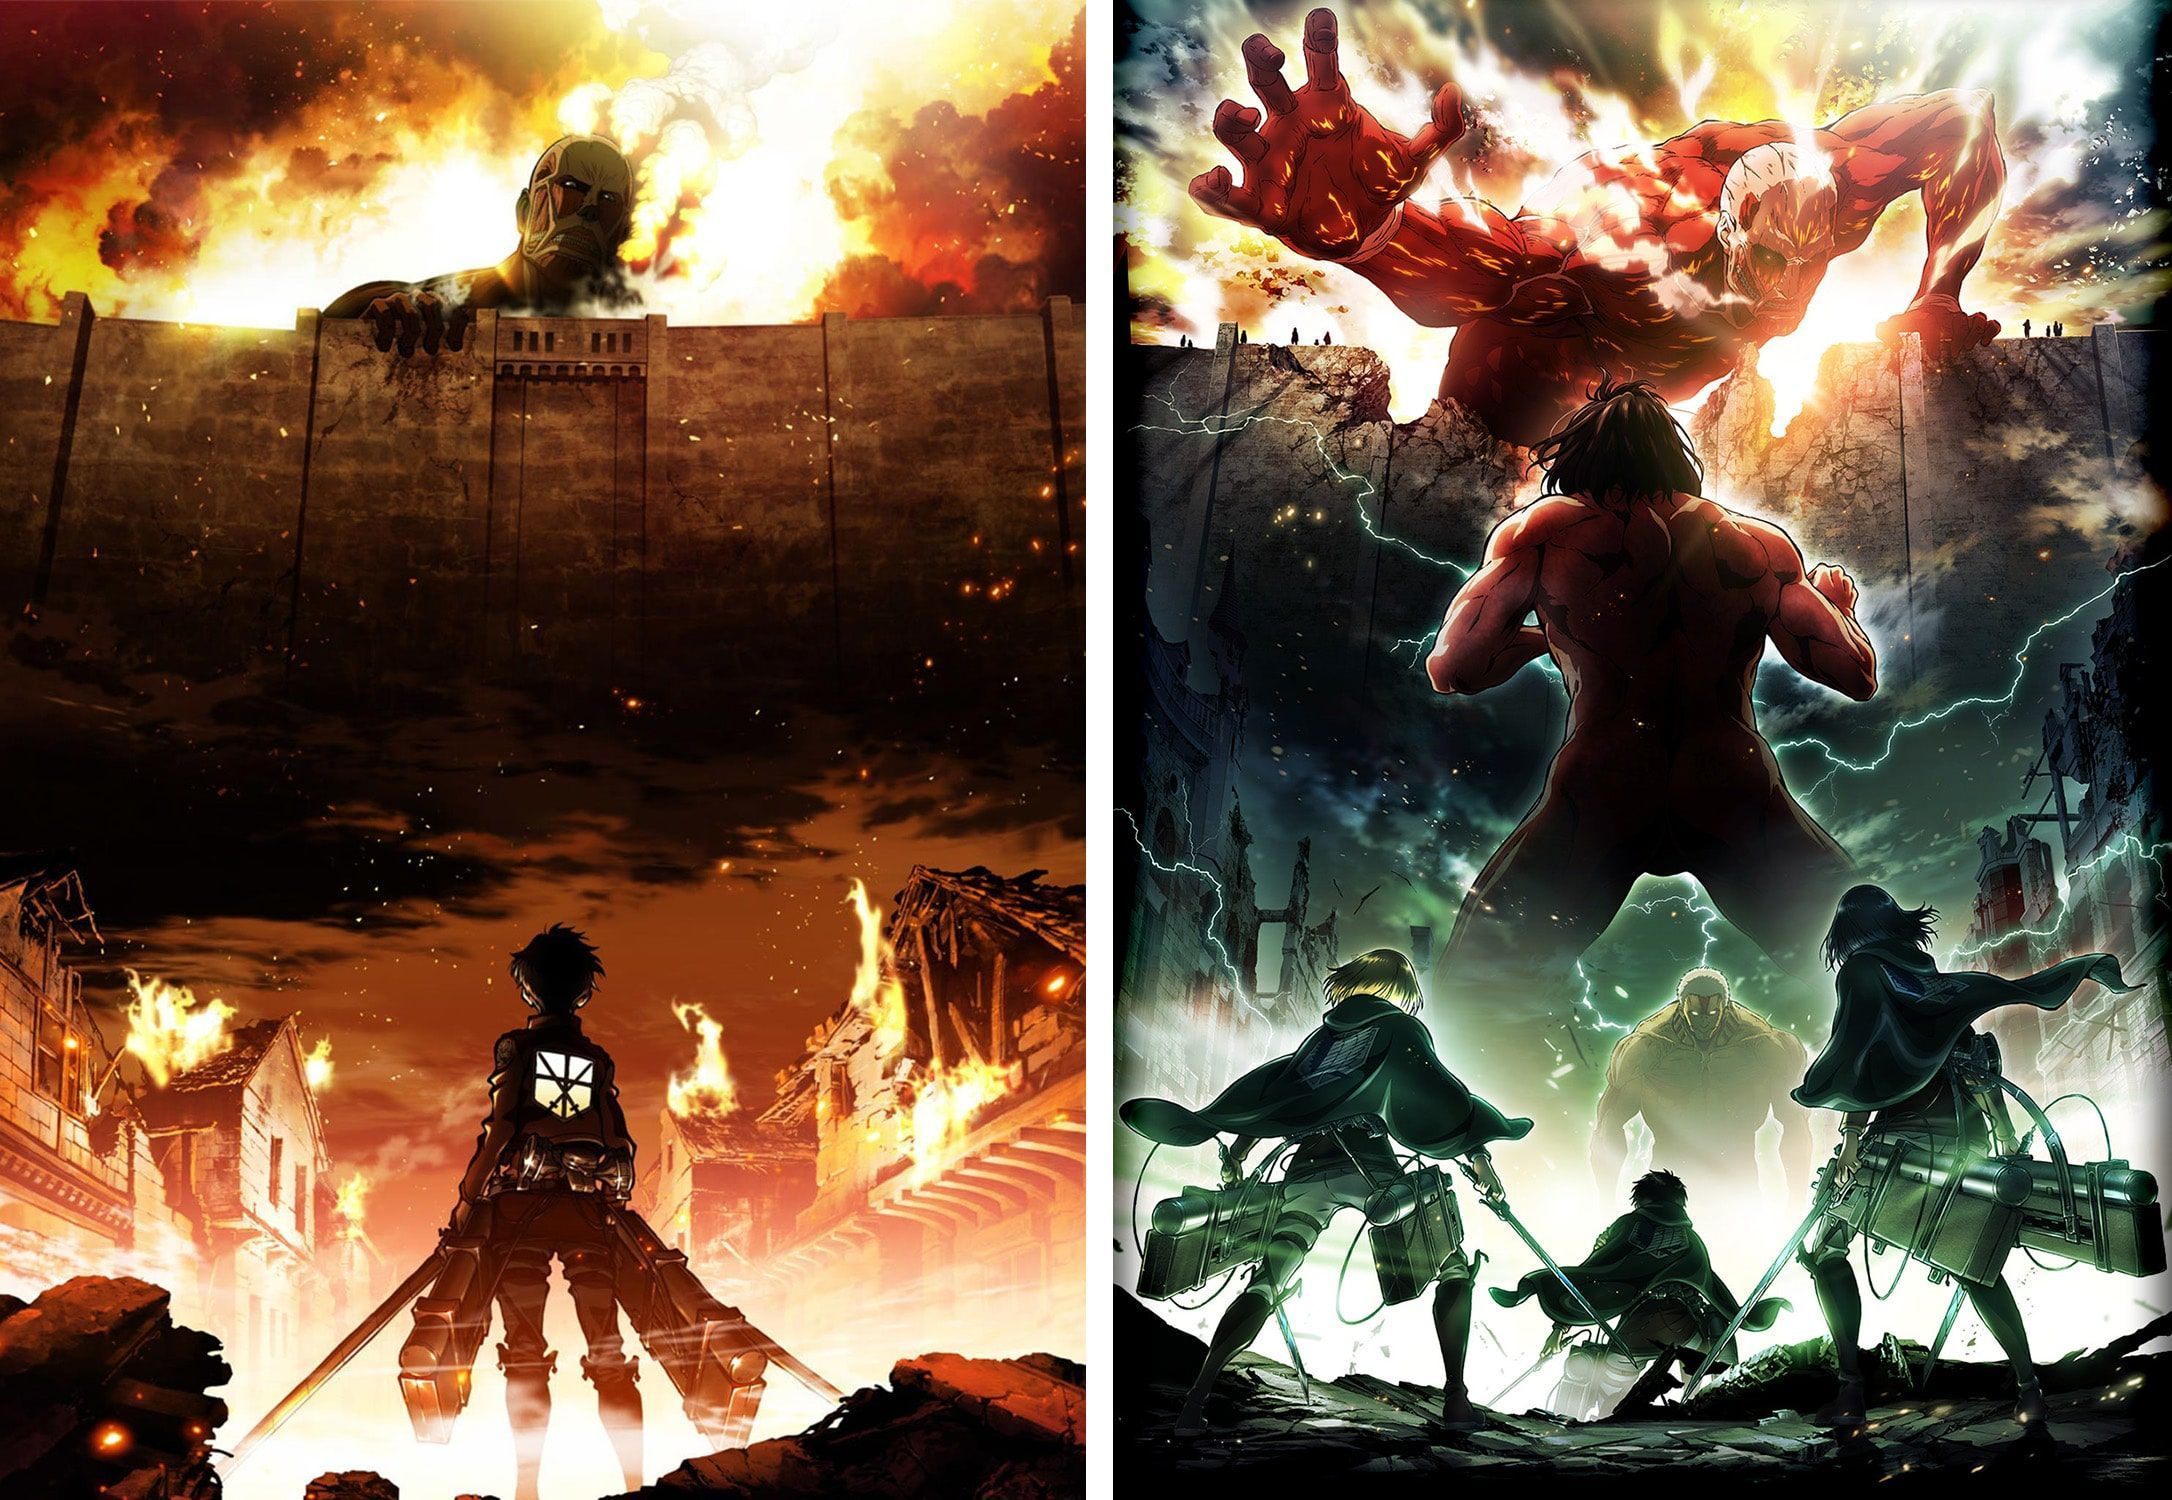 Attack On Titan Season 1 and 2 Attack on titan season